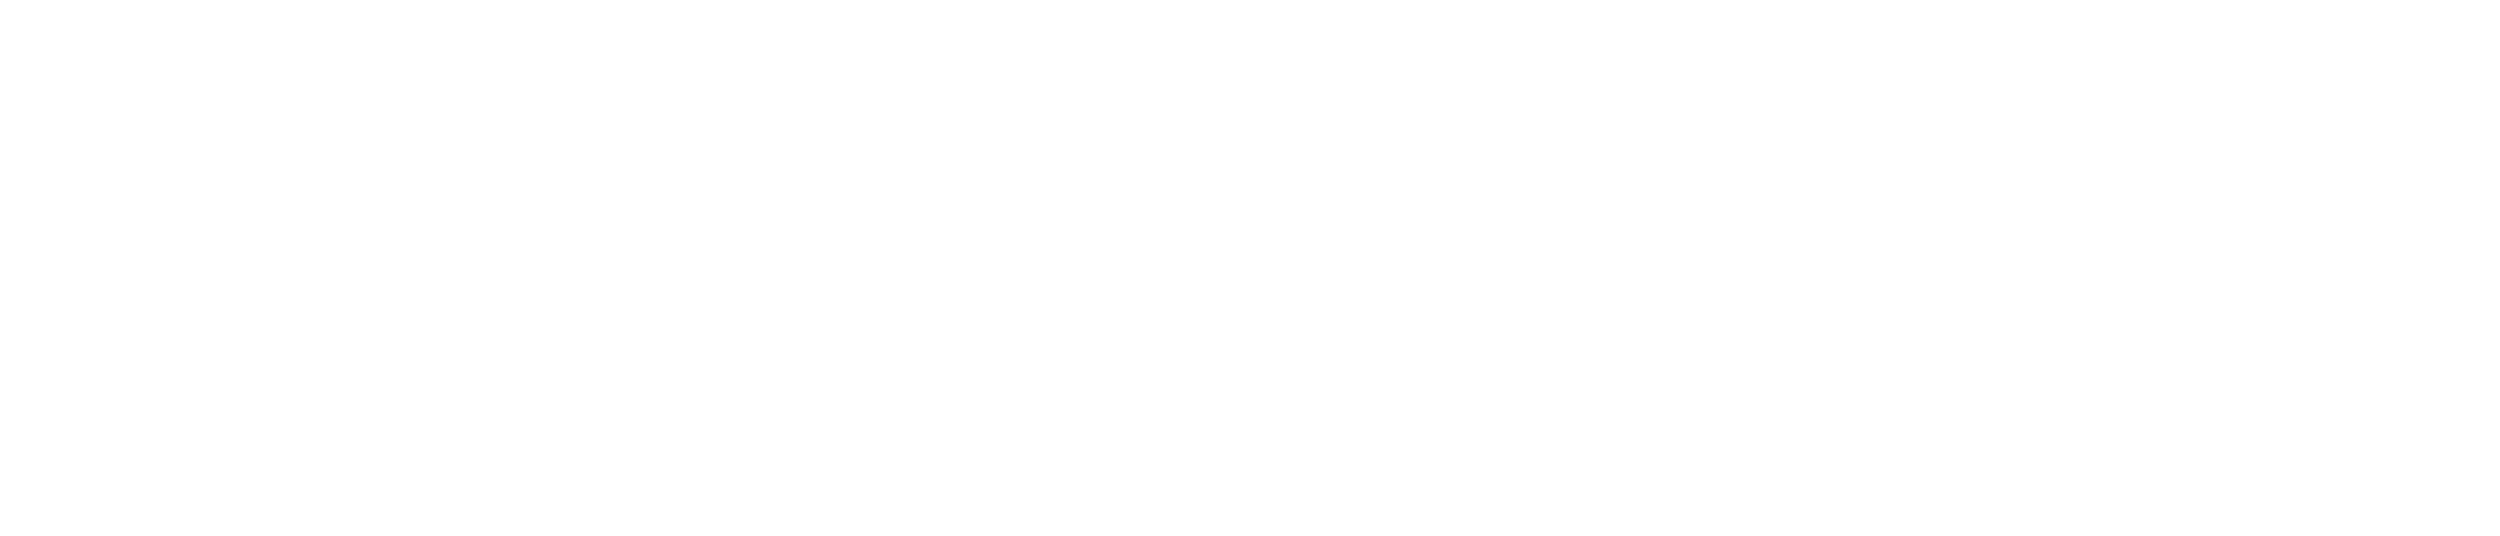 highliner learning gear reviews and vans.png